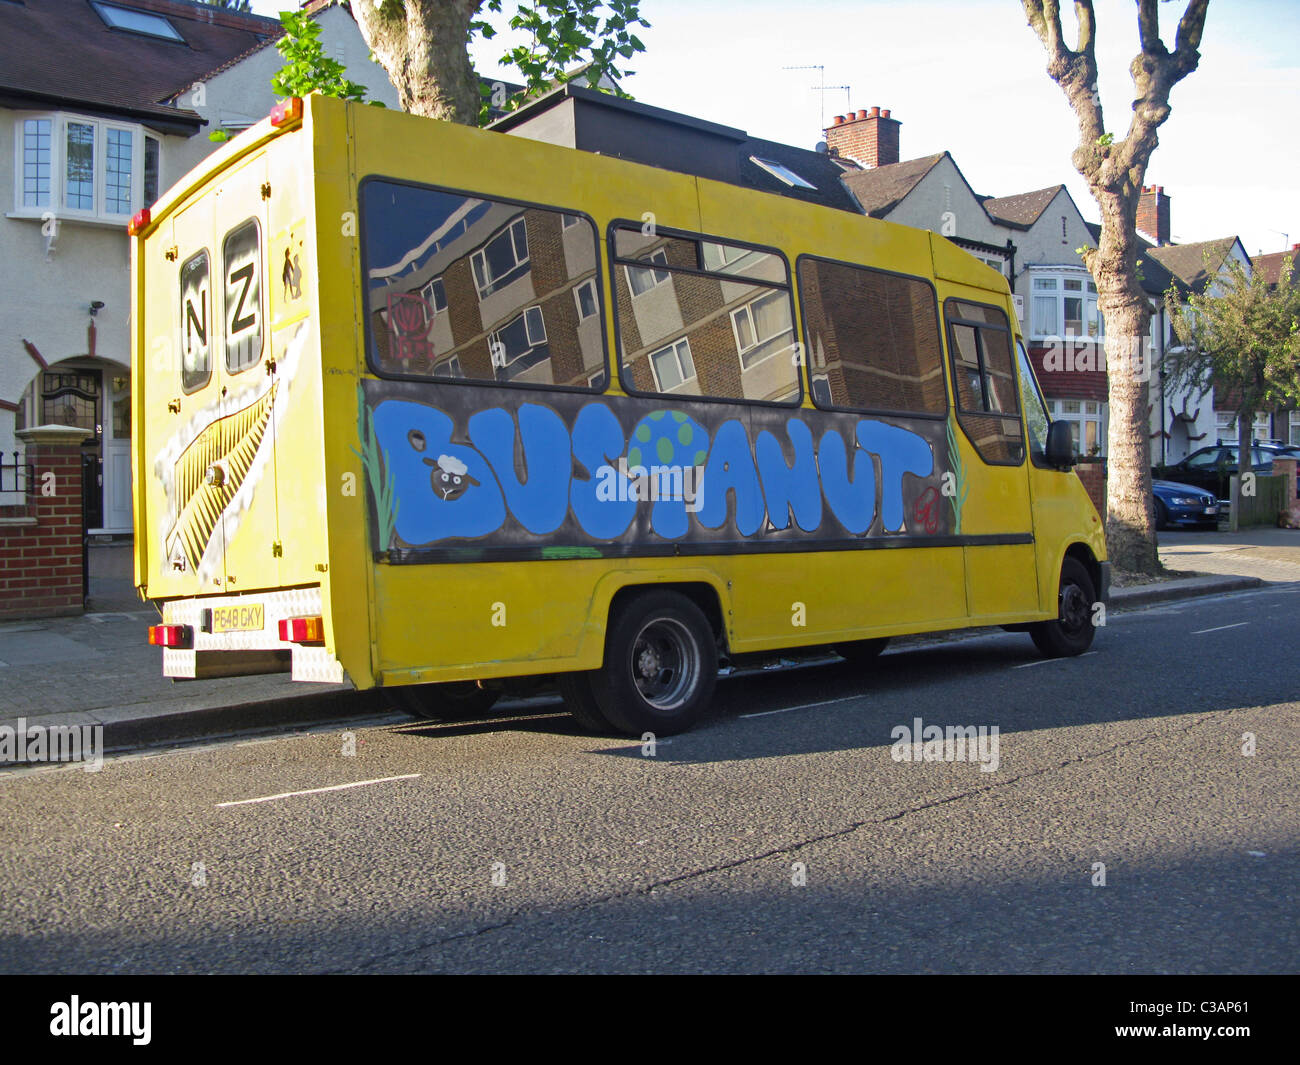 Old school bus decorated with graffiti - Stock Image